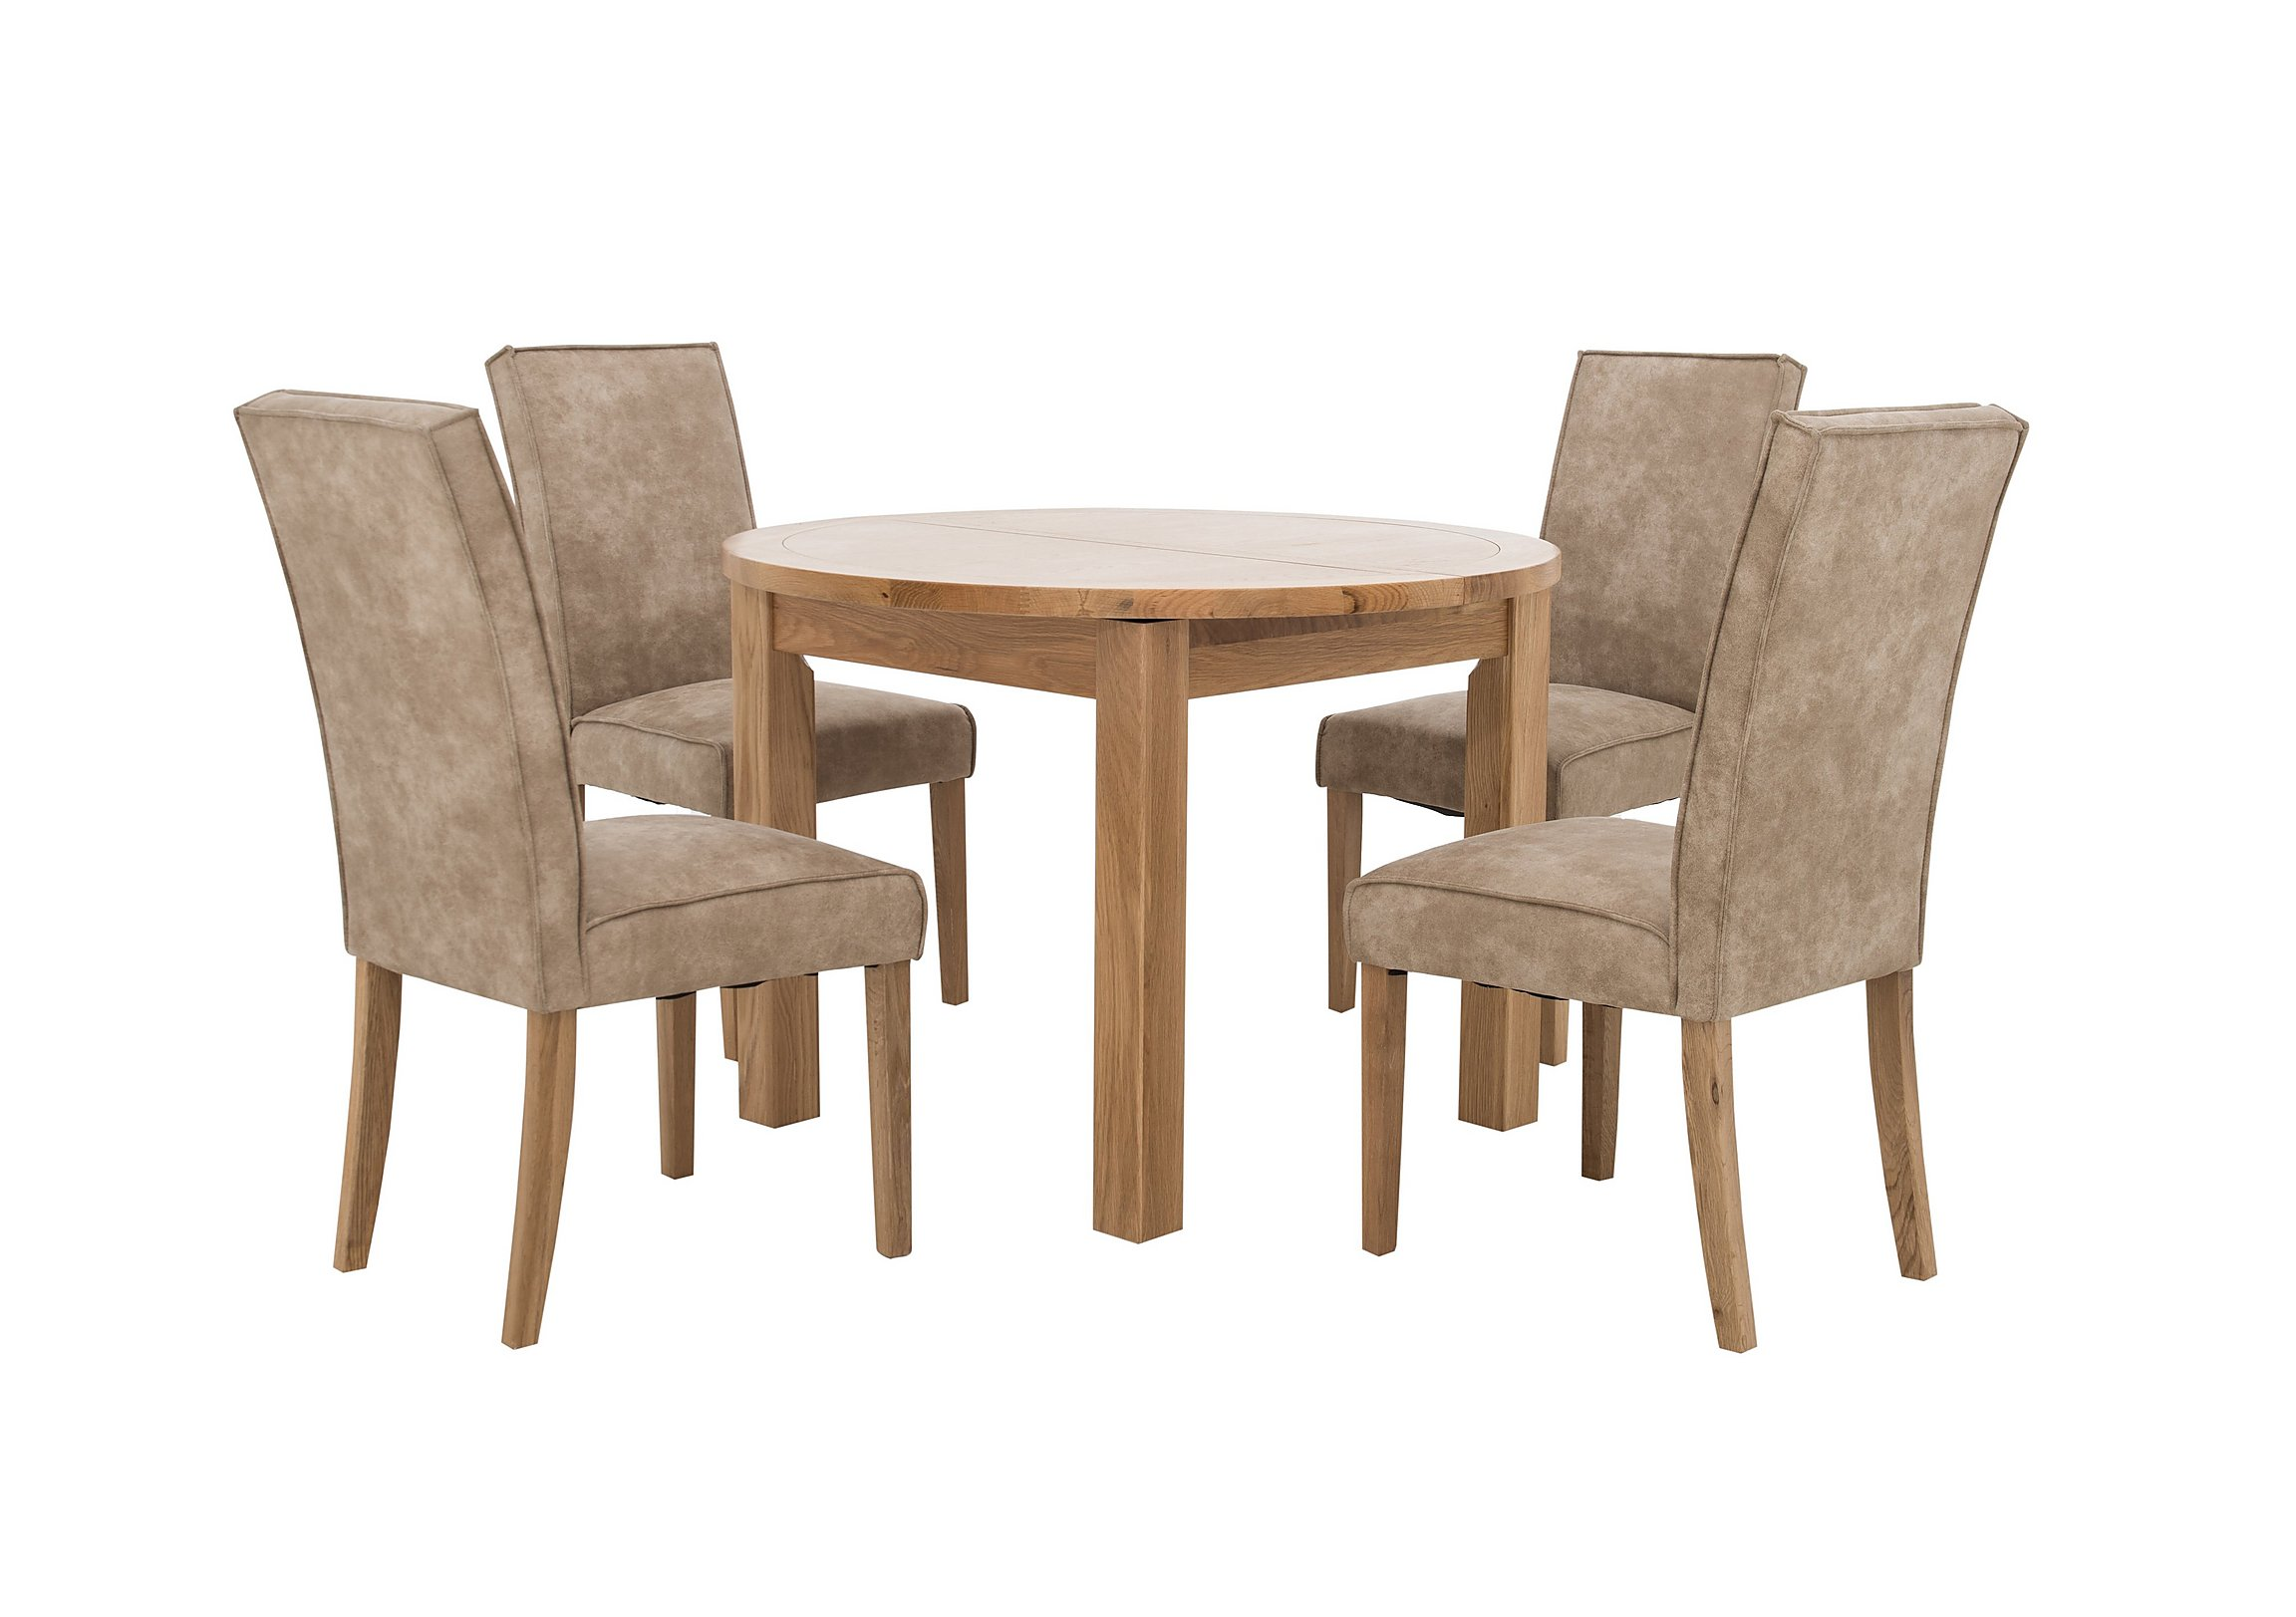 Unique Round Dining Table That Extends Light Of Room